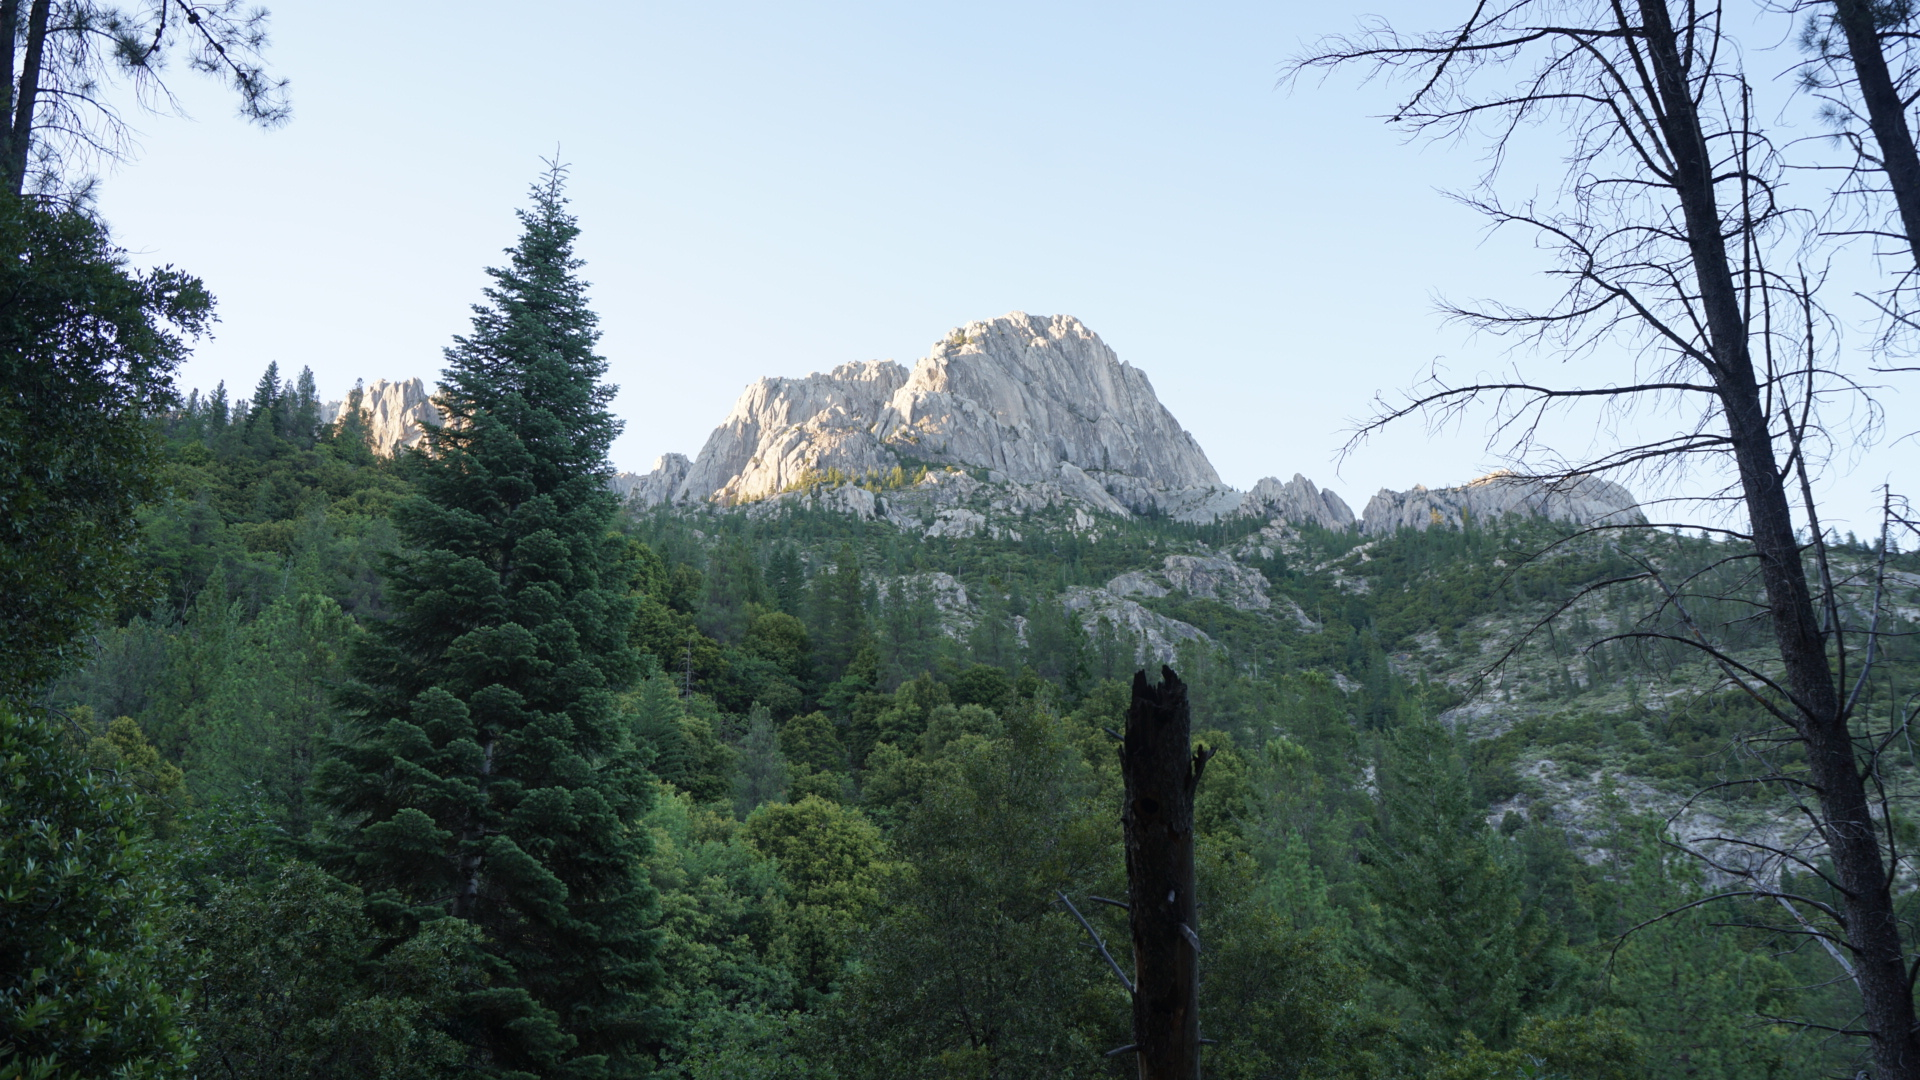 Castle Crags from the PCT